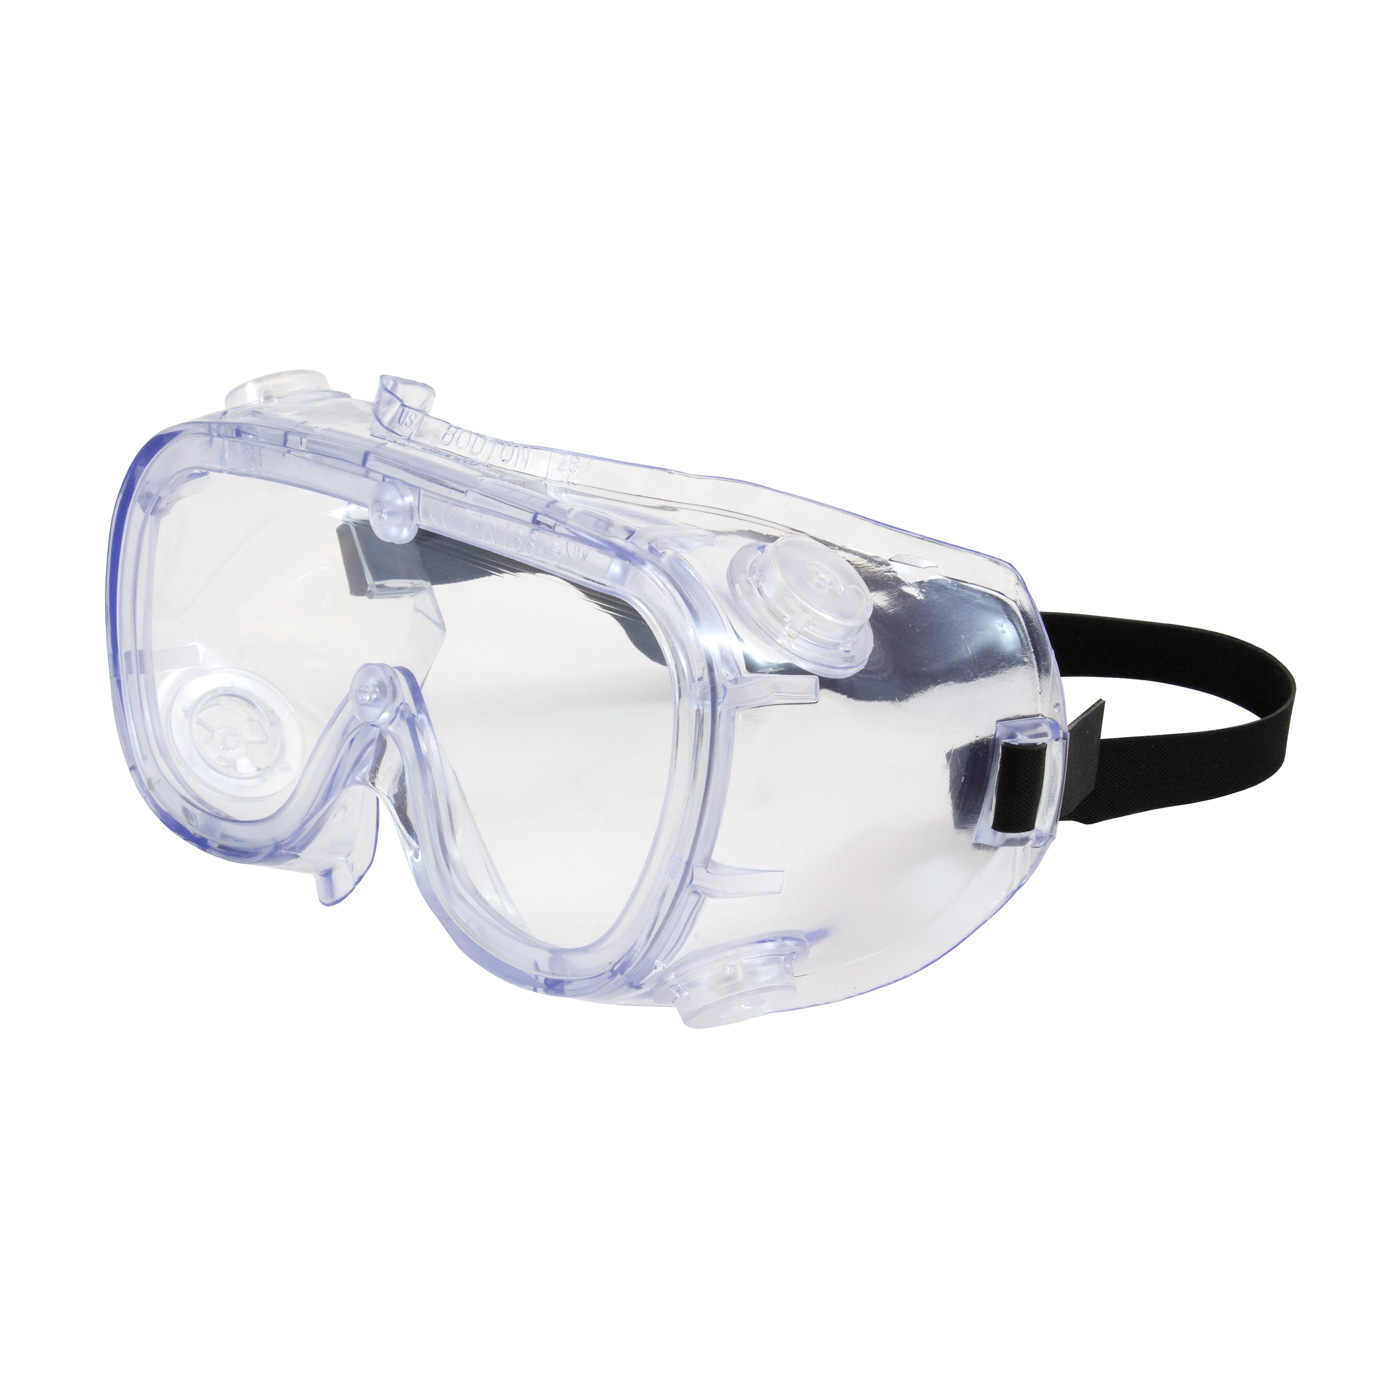 Indirect Vent Goggle with Clear Blue Body, Clear Lens and Anti-Scratch / Anti-Fog Coating, Clear, OS